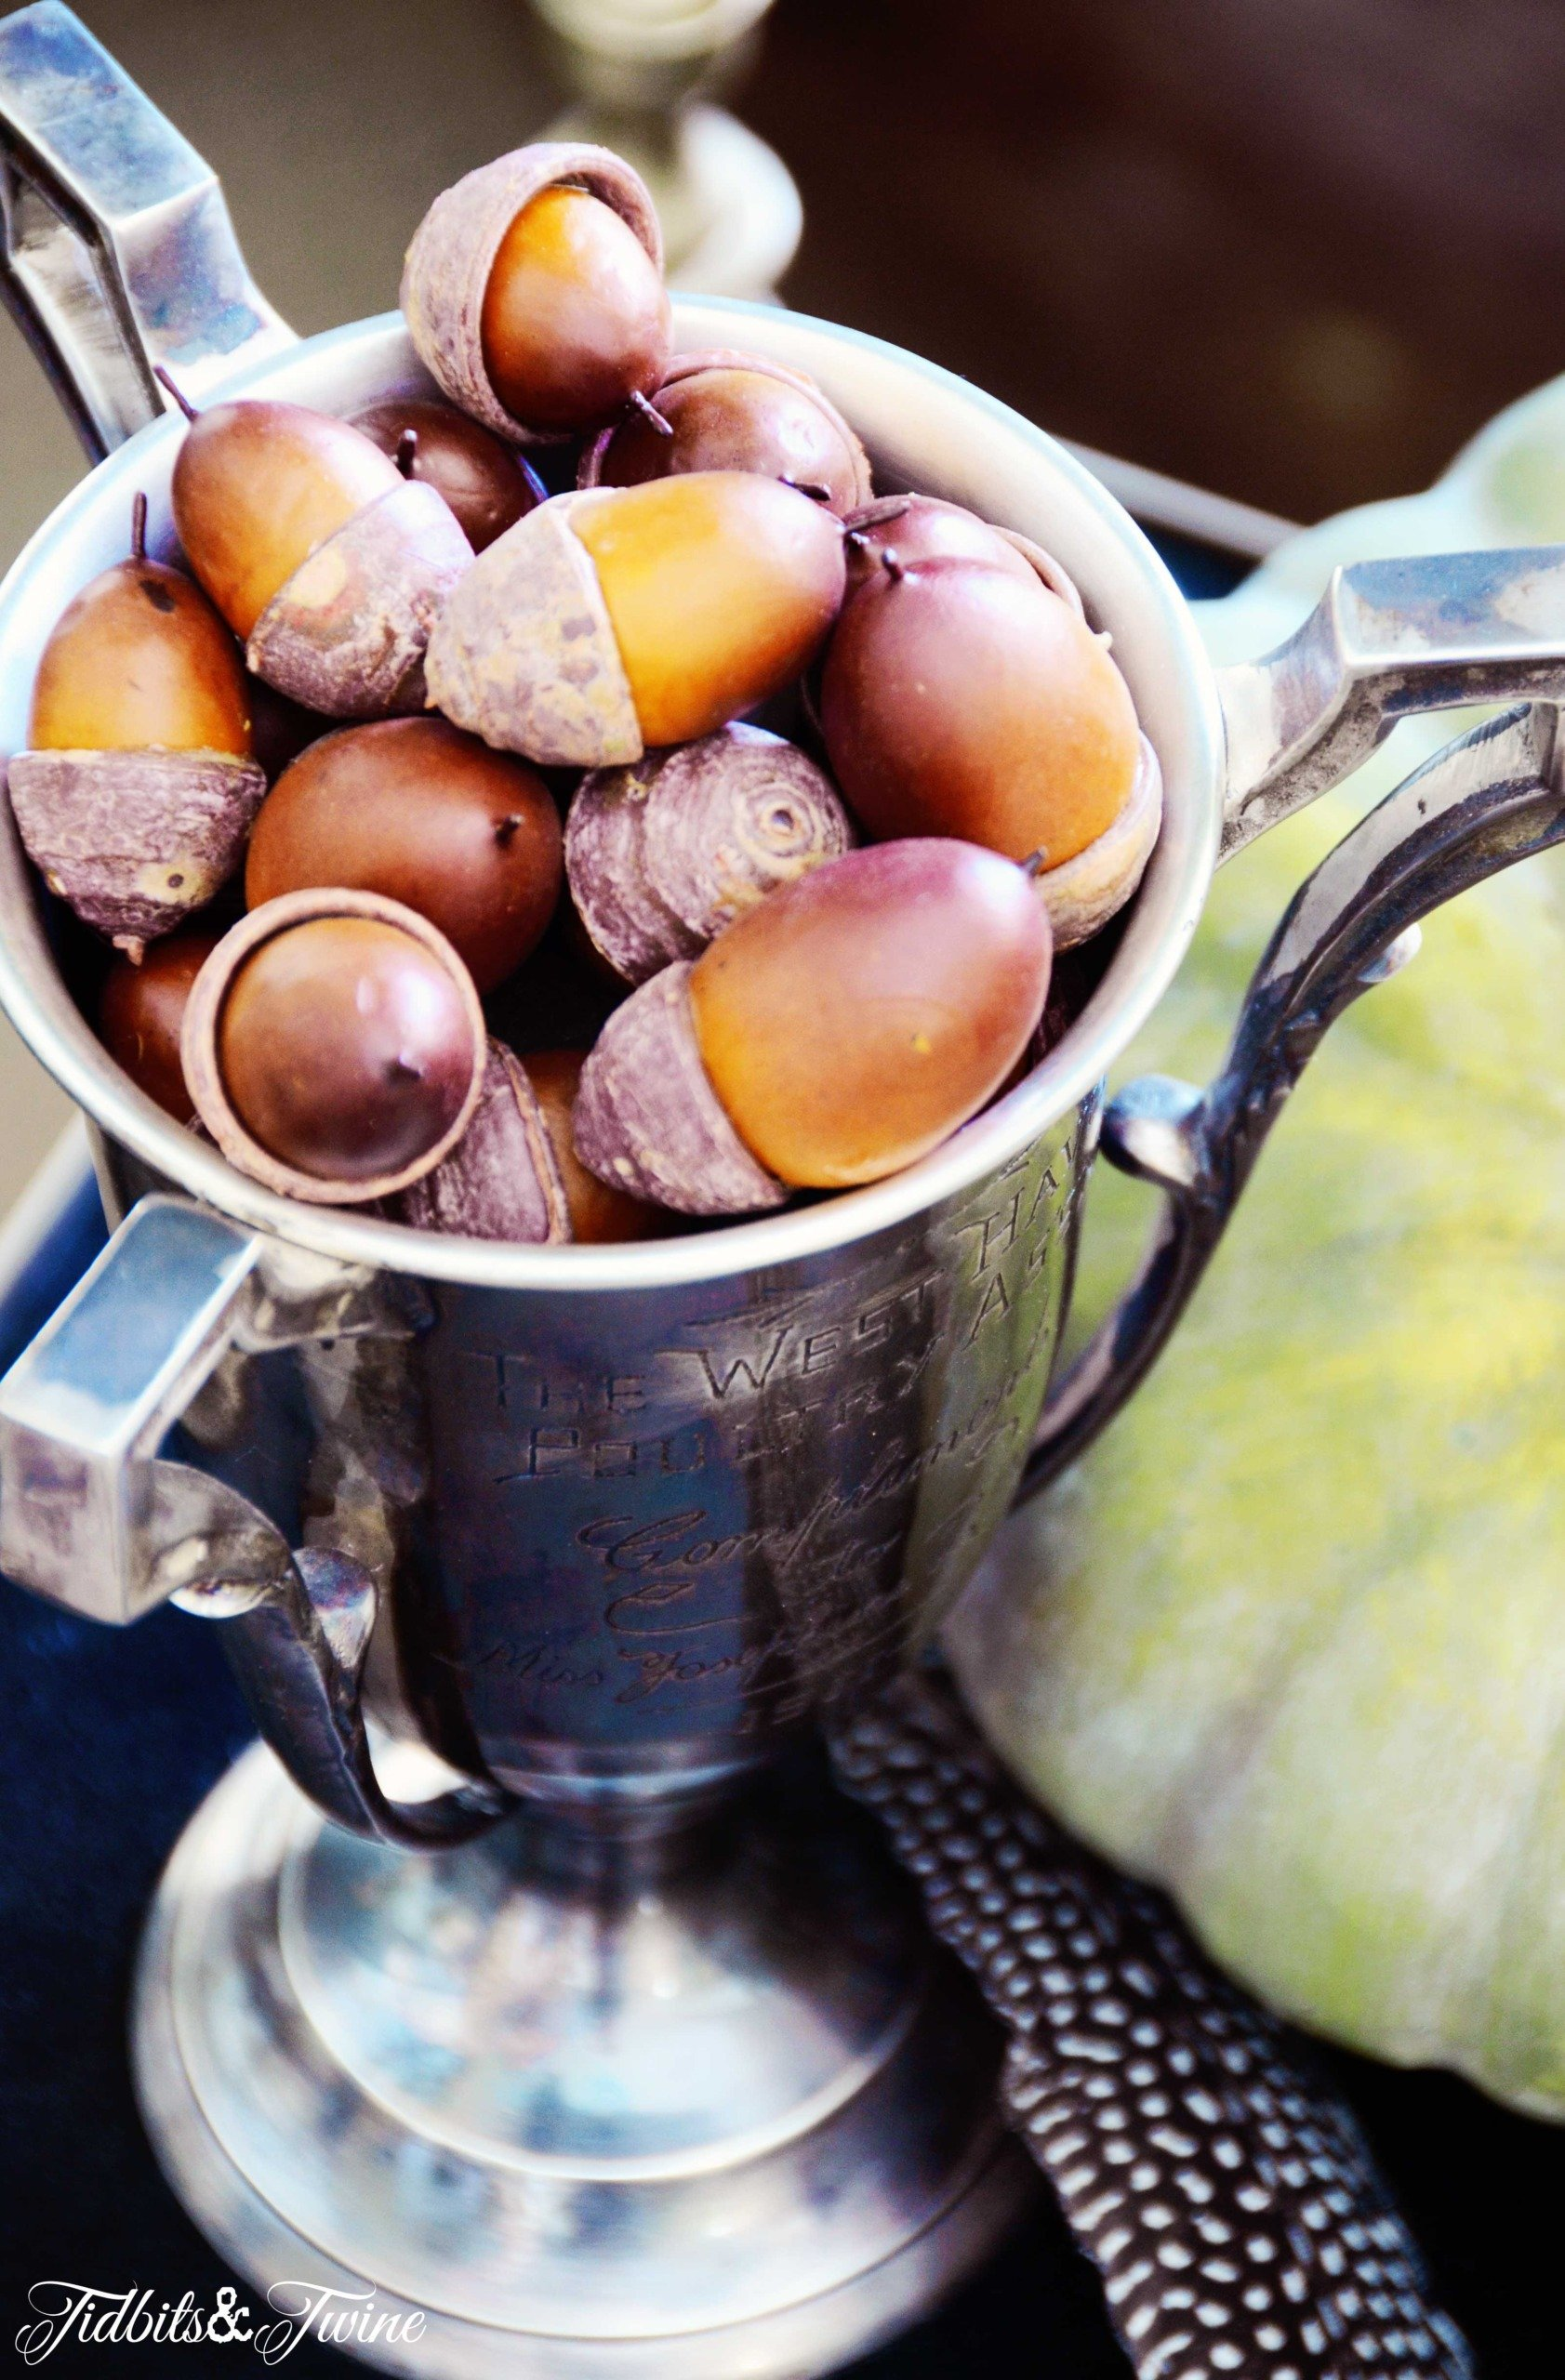 Vintage trophy cup holding acorns for Fall decor